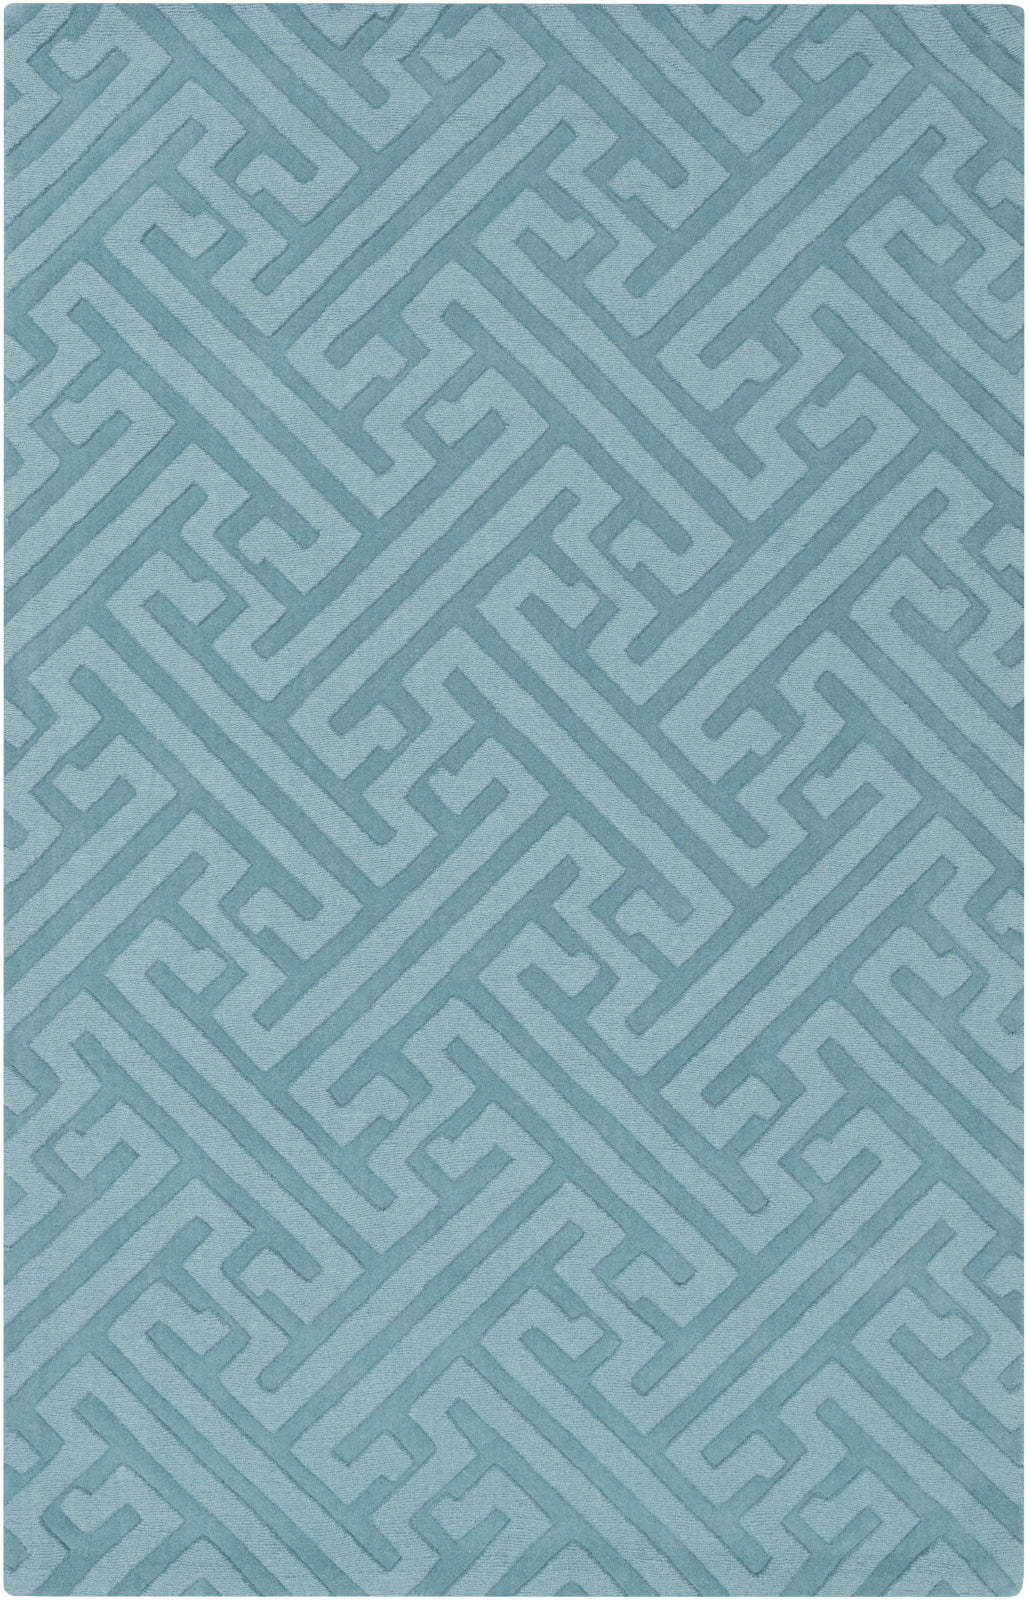 Surya The Oakes OAK-6007 Area Rug by Florence Broadhurst main image